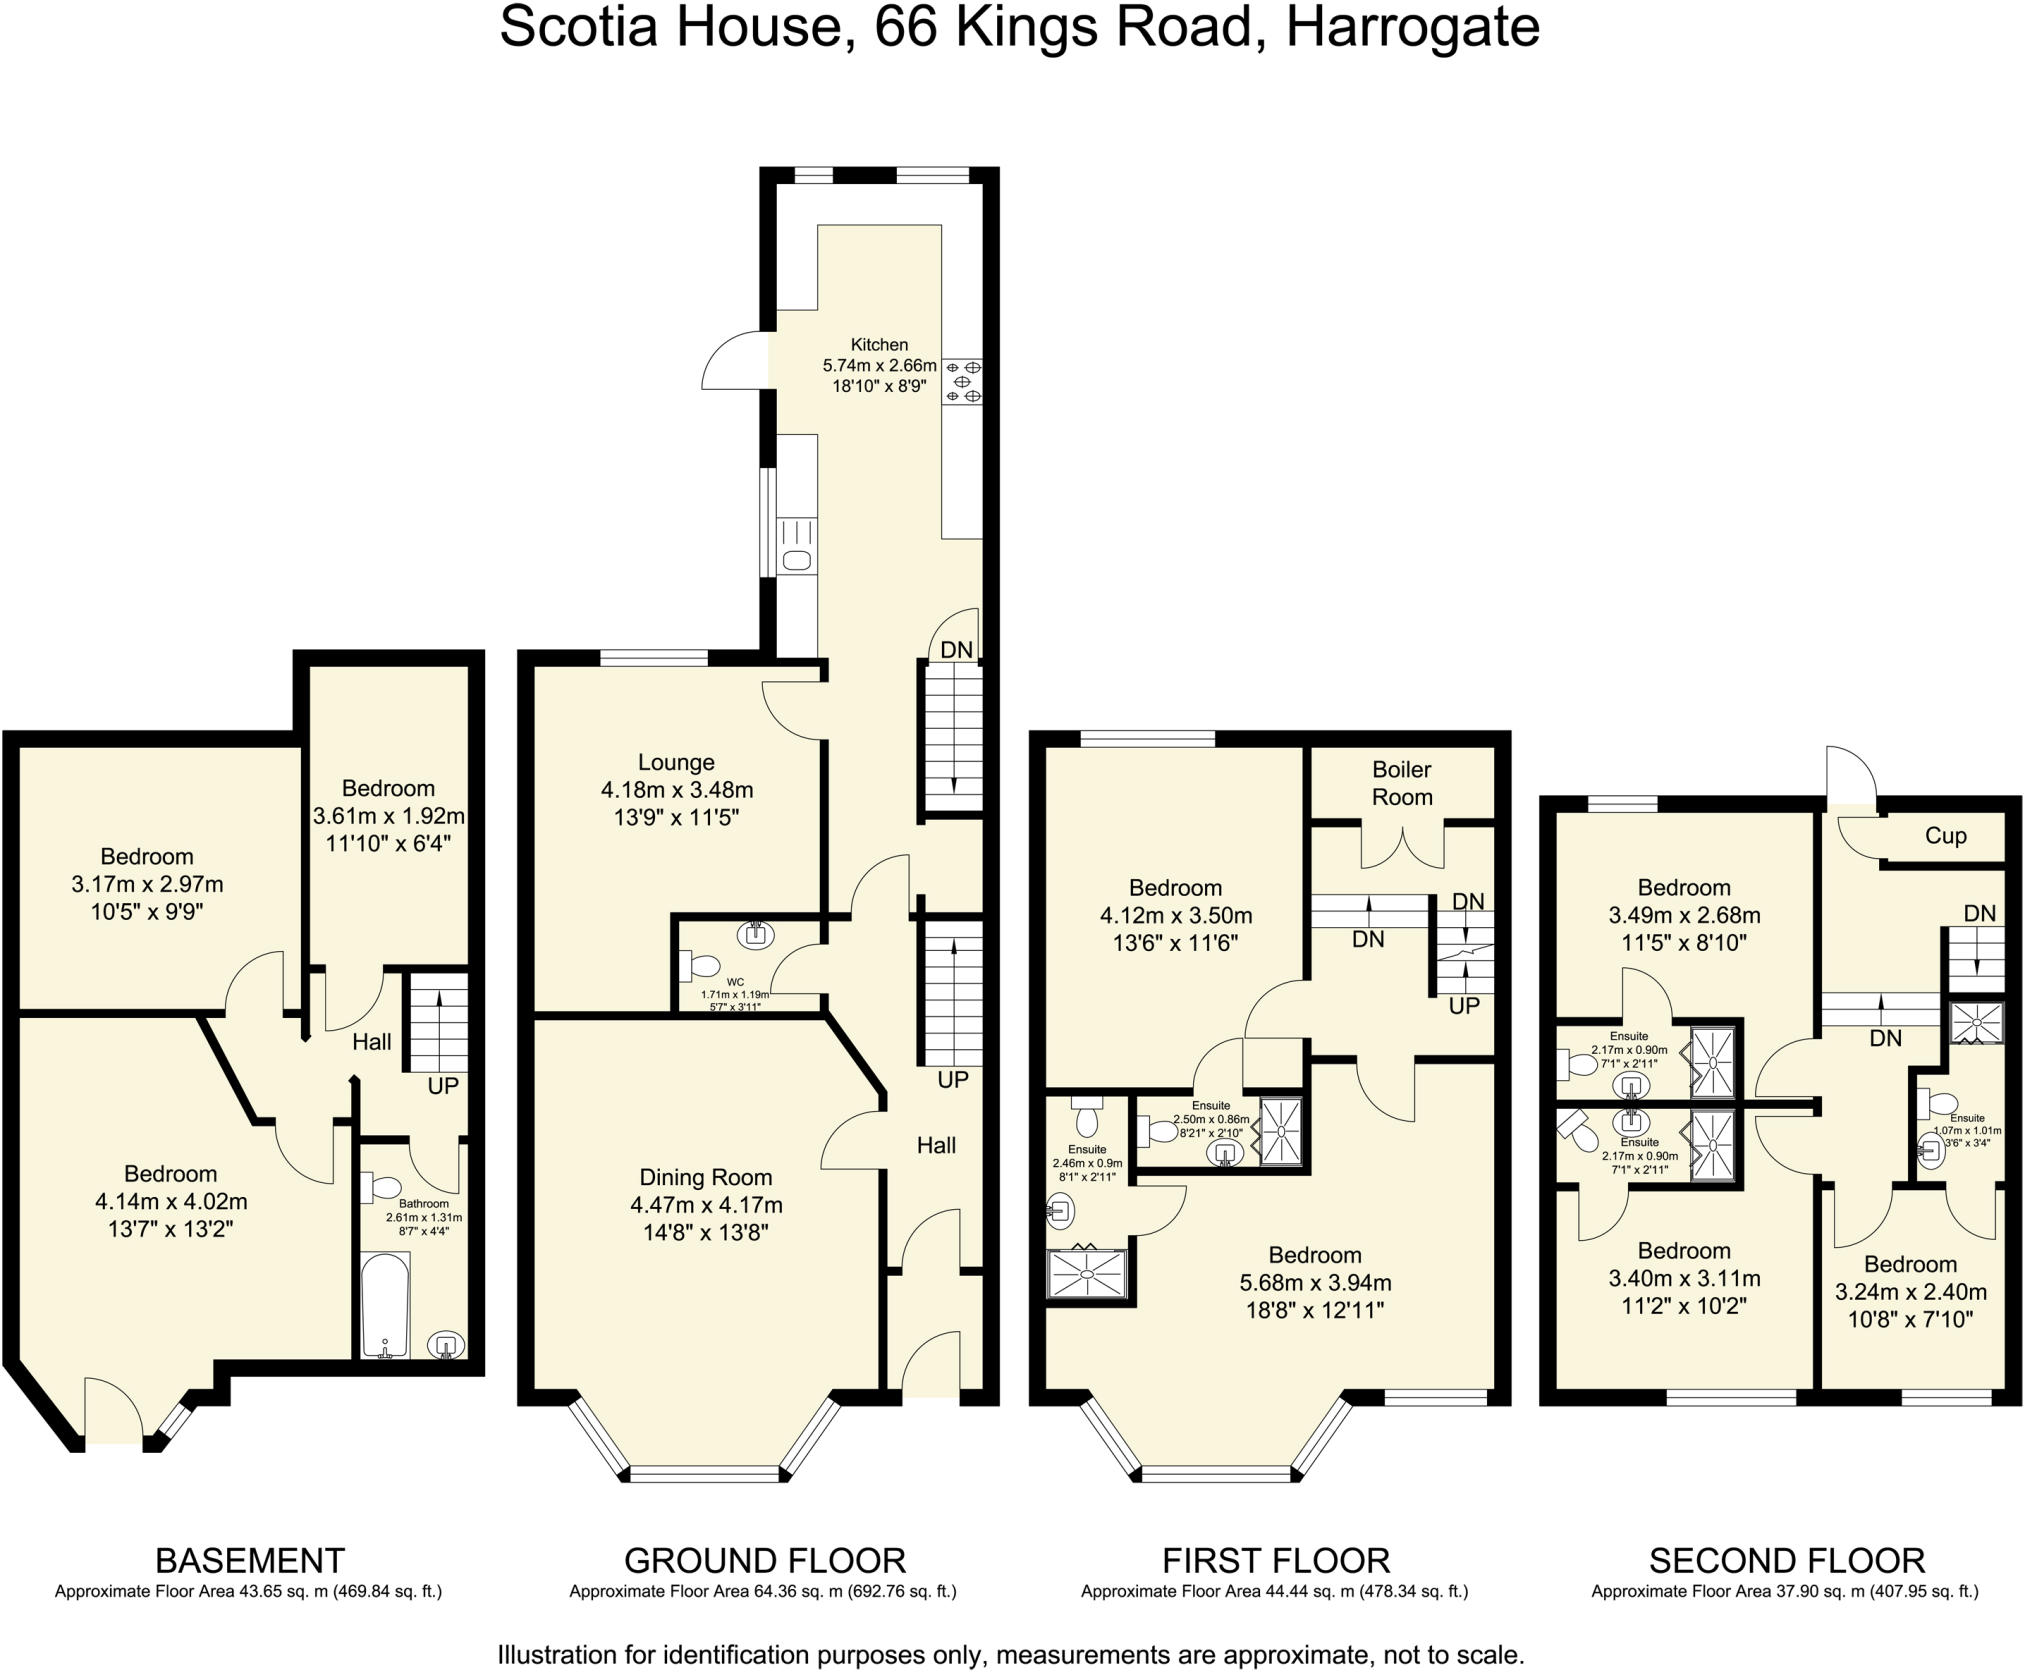 5 Bedroom Town House For Sale In Scotia 66 Kings Road 2000 King Of The Wiring Diagram Harrogate Hg1 5jr